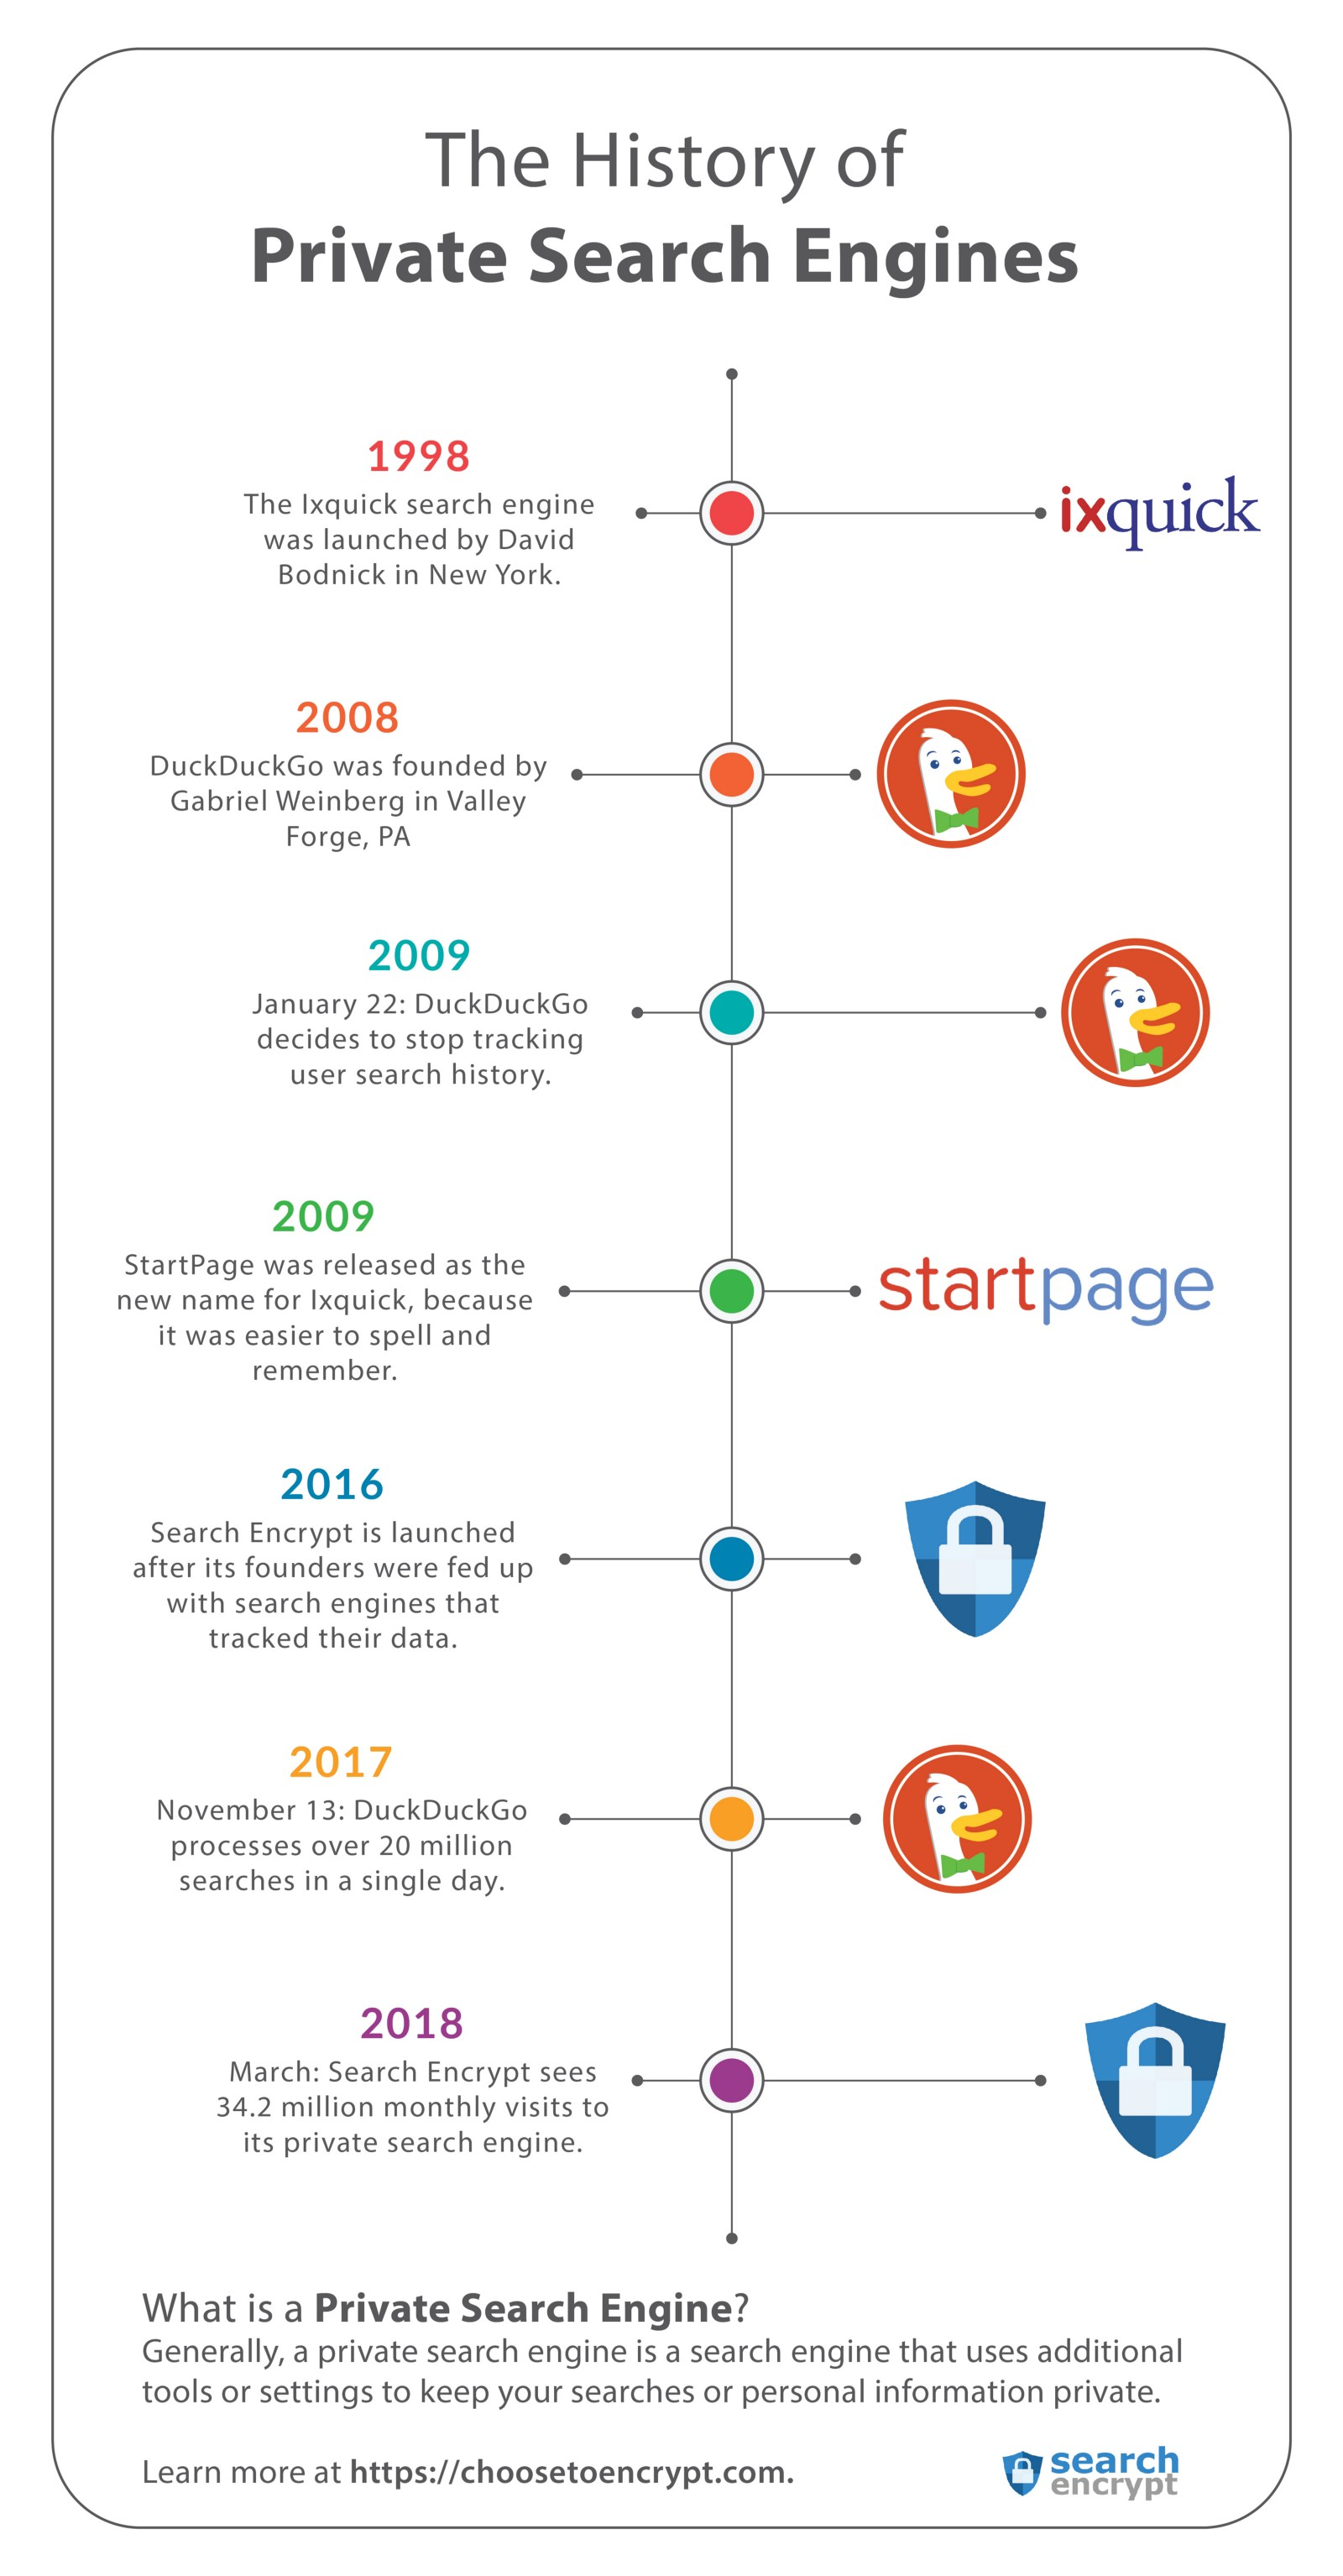 The History of Private Search Engines